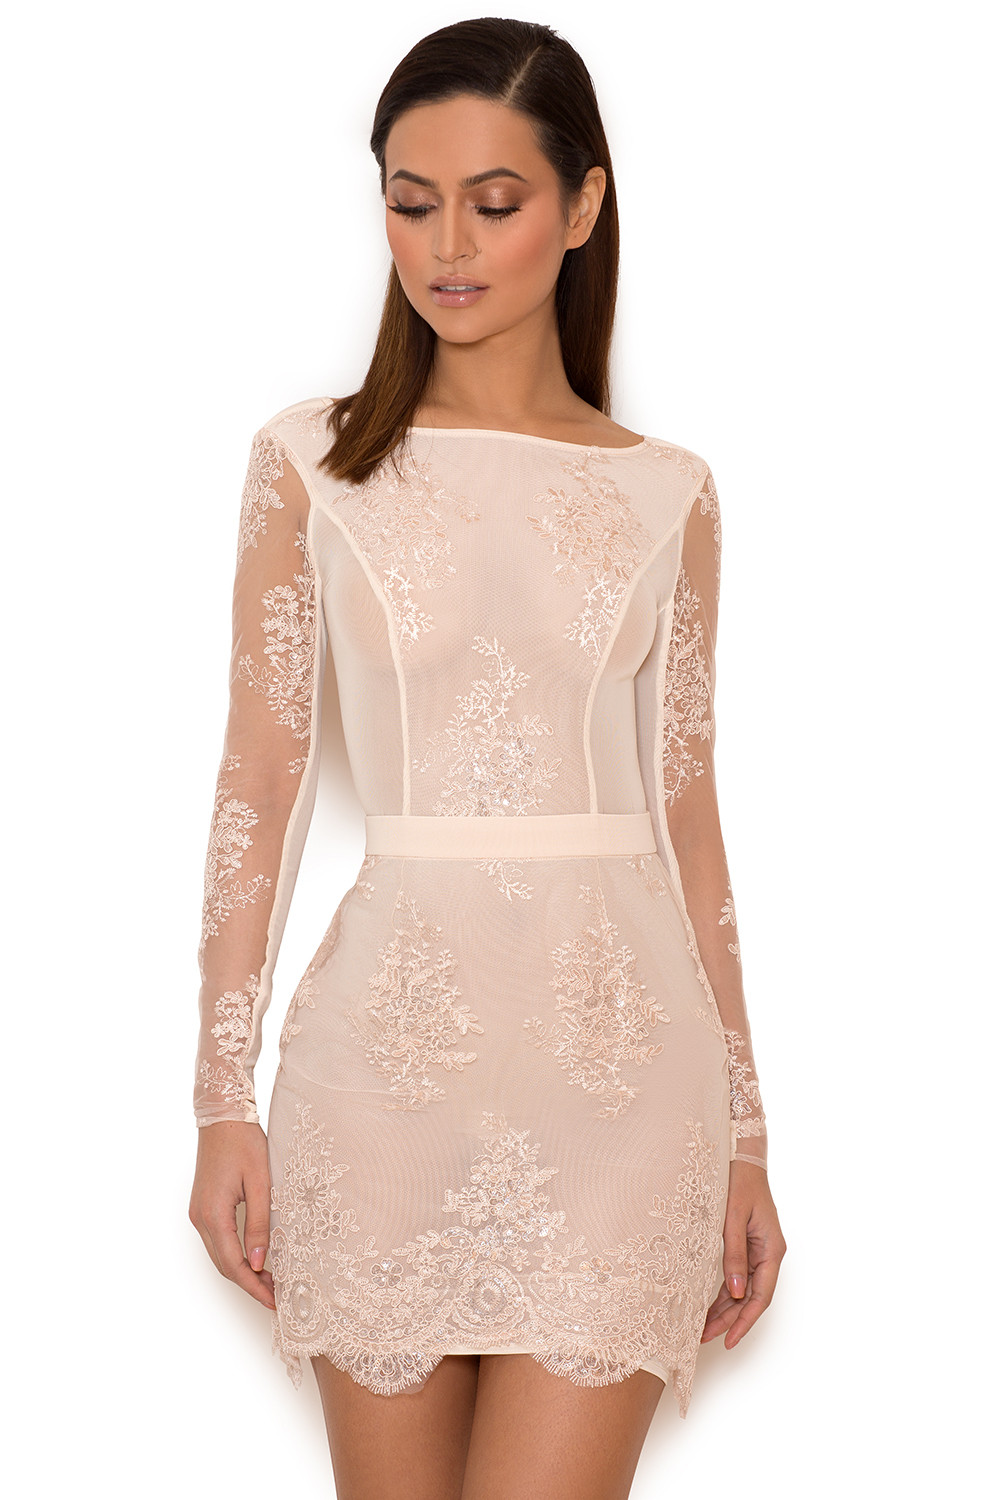 8257092bff7 Clothing   Bodycon Dresses    Sathea  Light Pink Lace and Sequin Backless  Dress